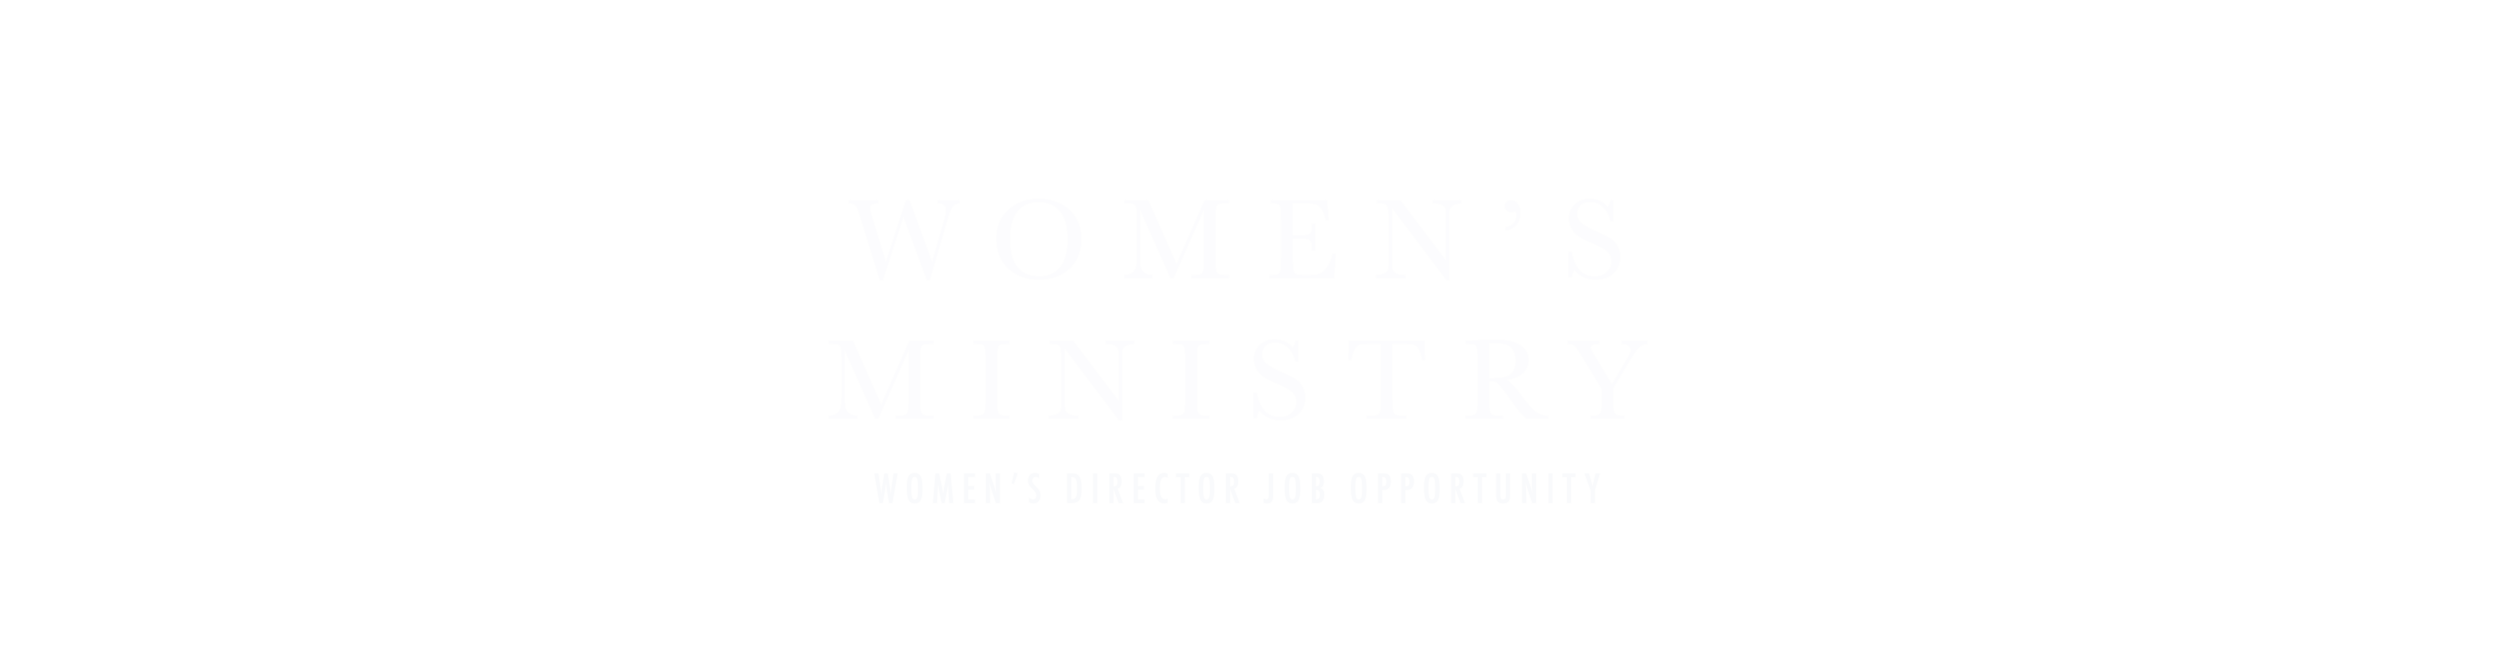 womens tile-01.png